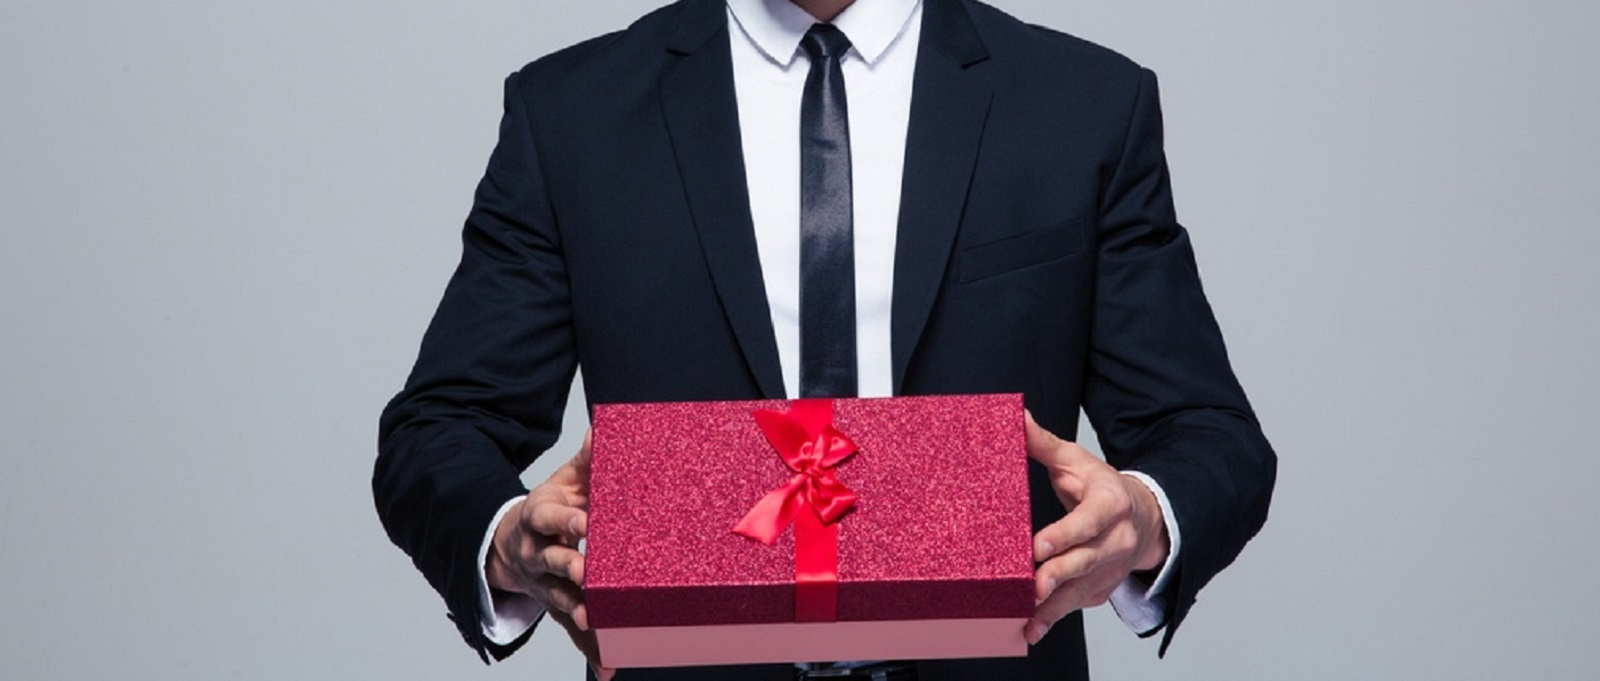 The Hottest Corporate Product Gifts of 2017